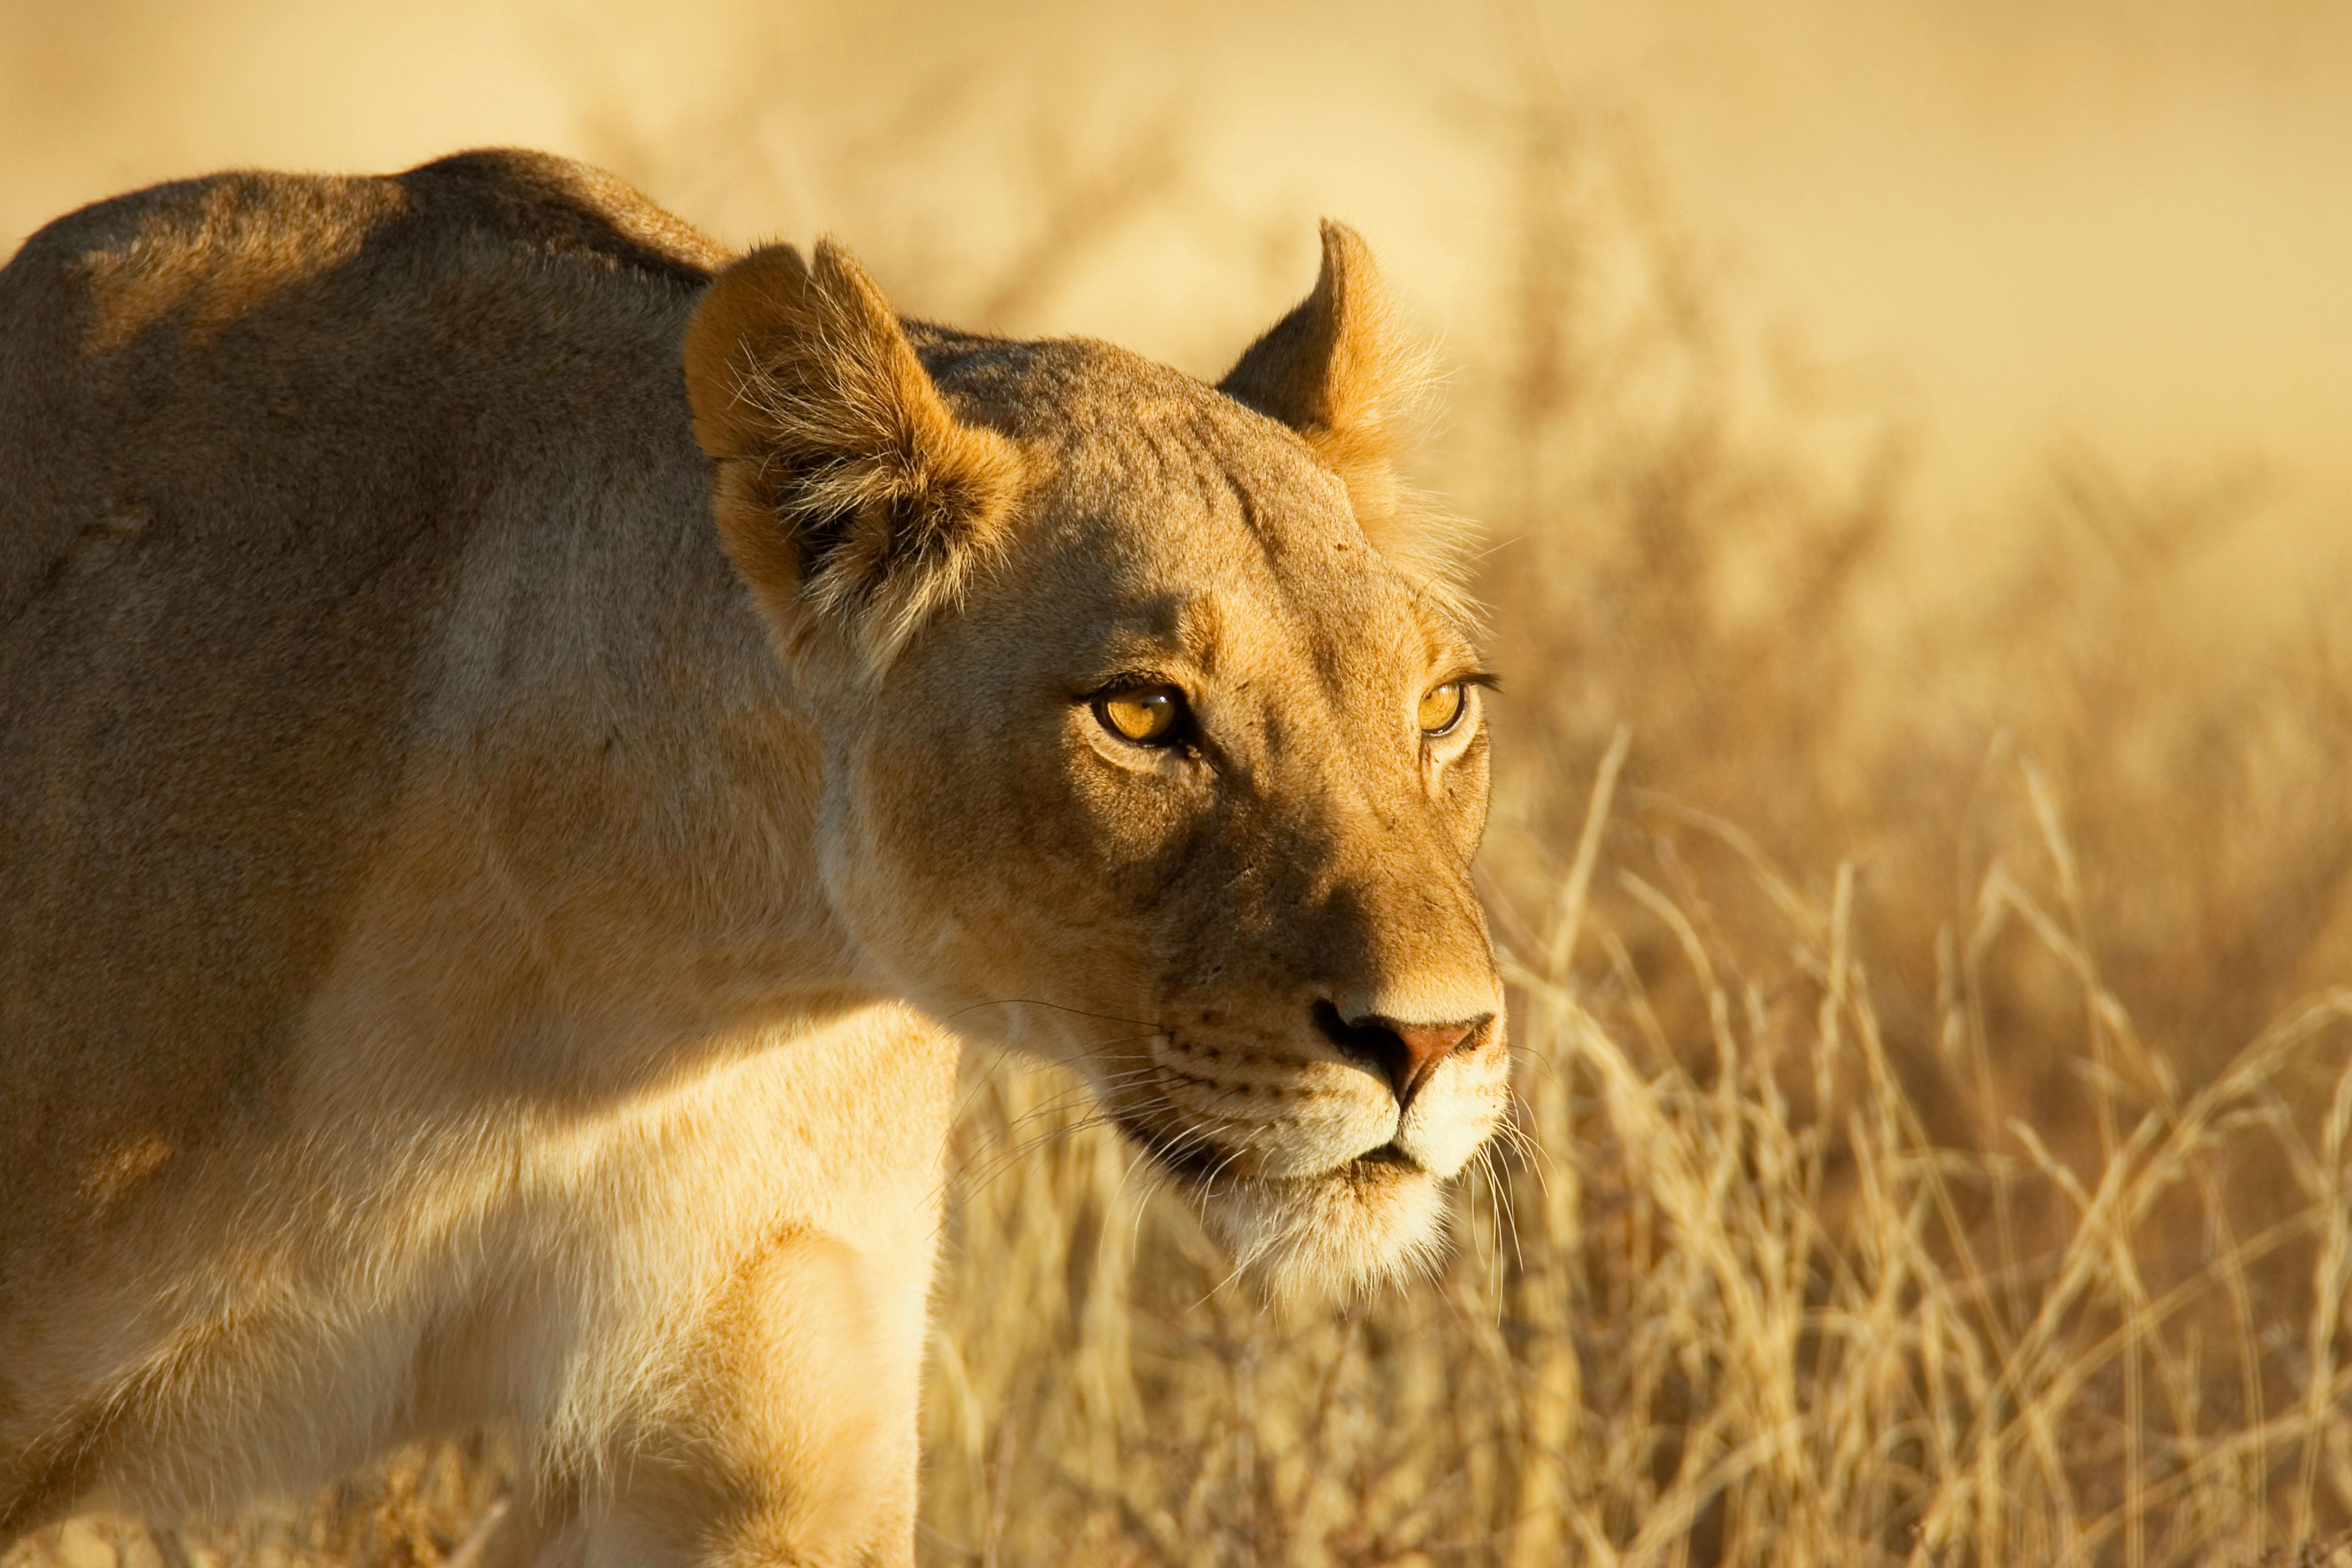 53494 download wallpaper Animals, Lion, Muzzle, Lioness, Grass screensavers and pictures for free